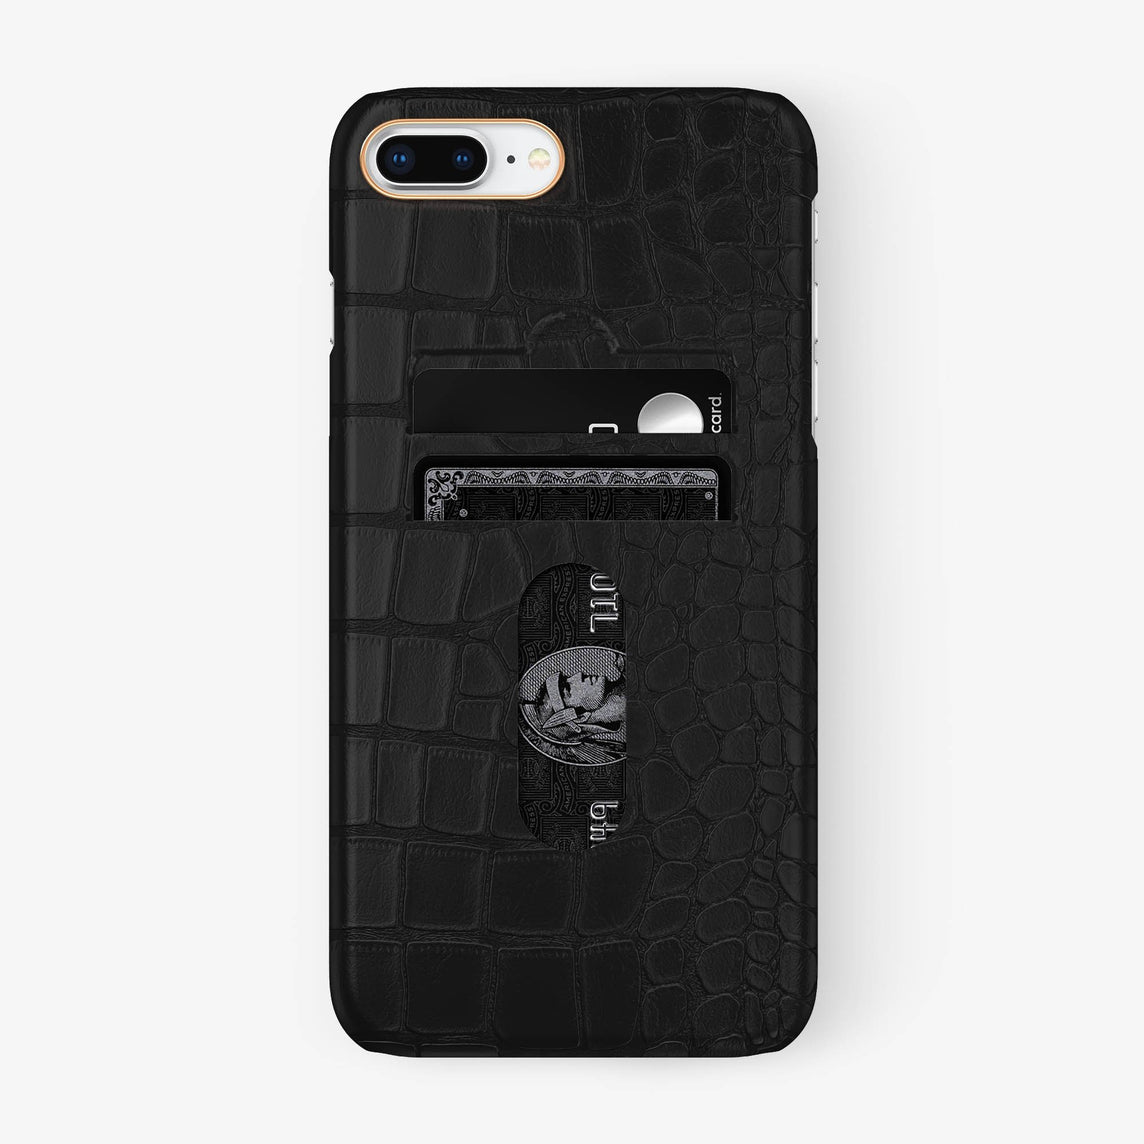 Alligator Card Holder Case iPhone 7/8 Plus | Phantom Black - Rose Gold - Hadoro